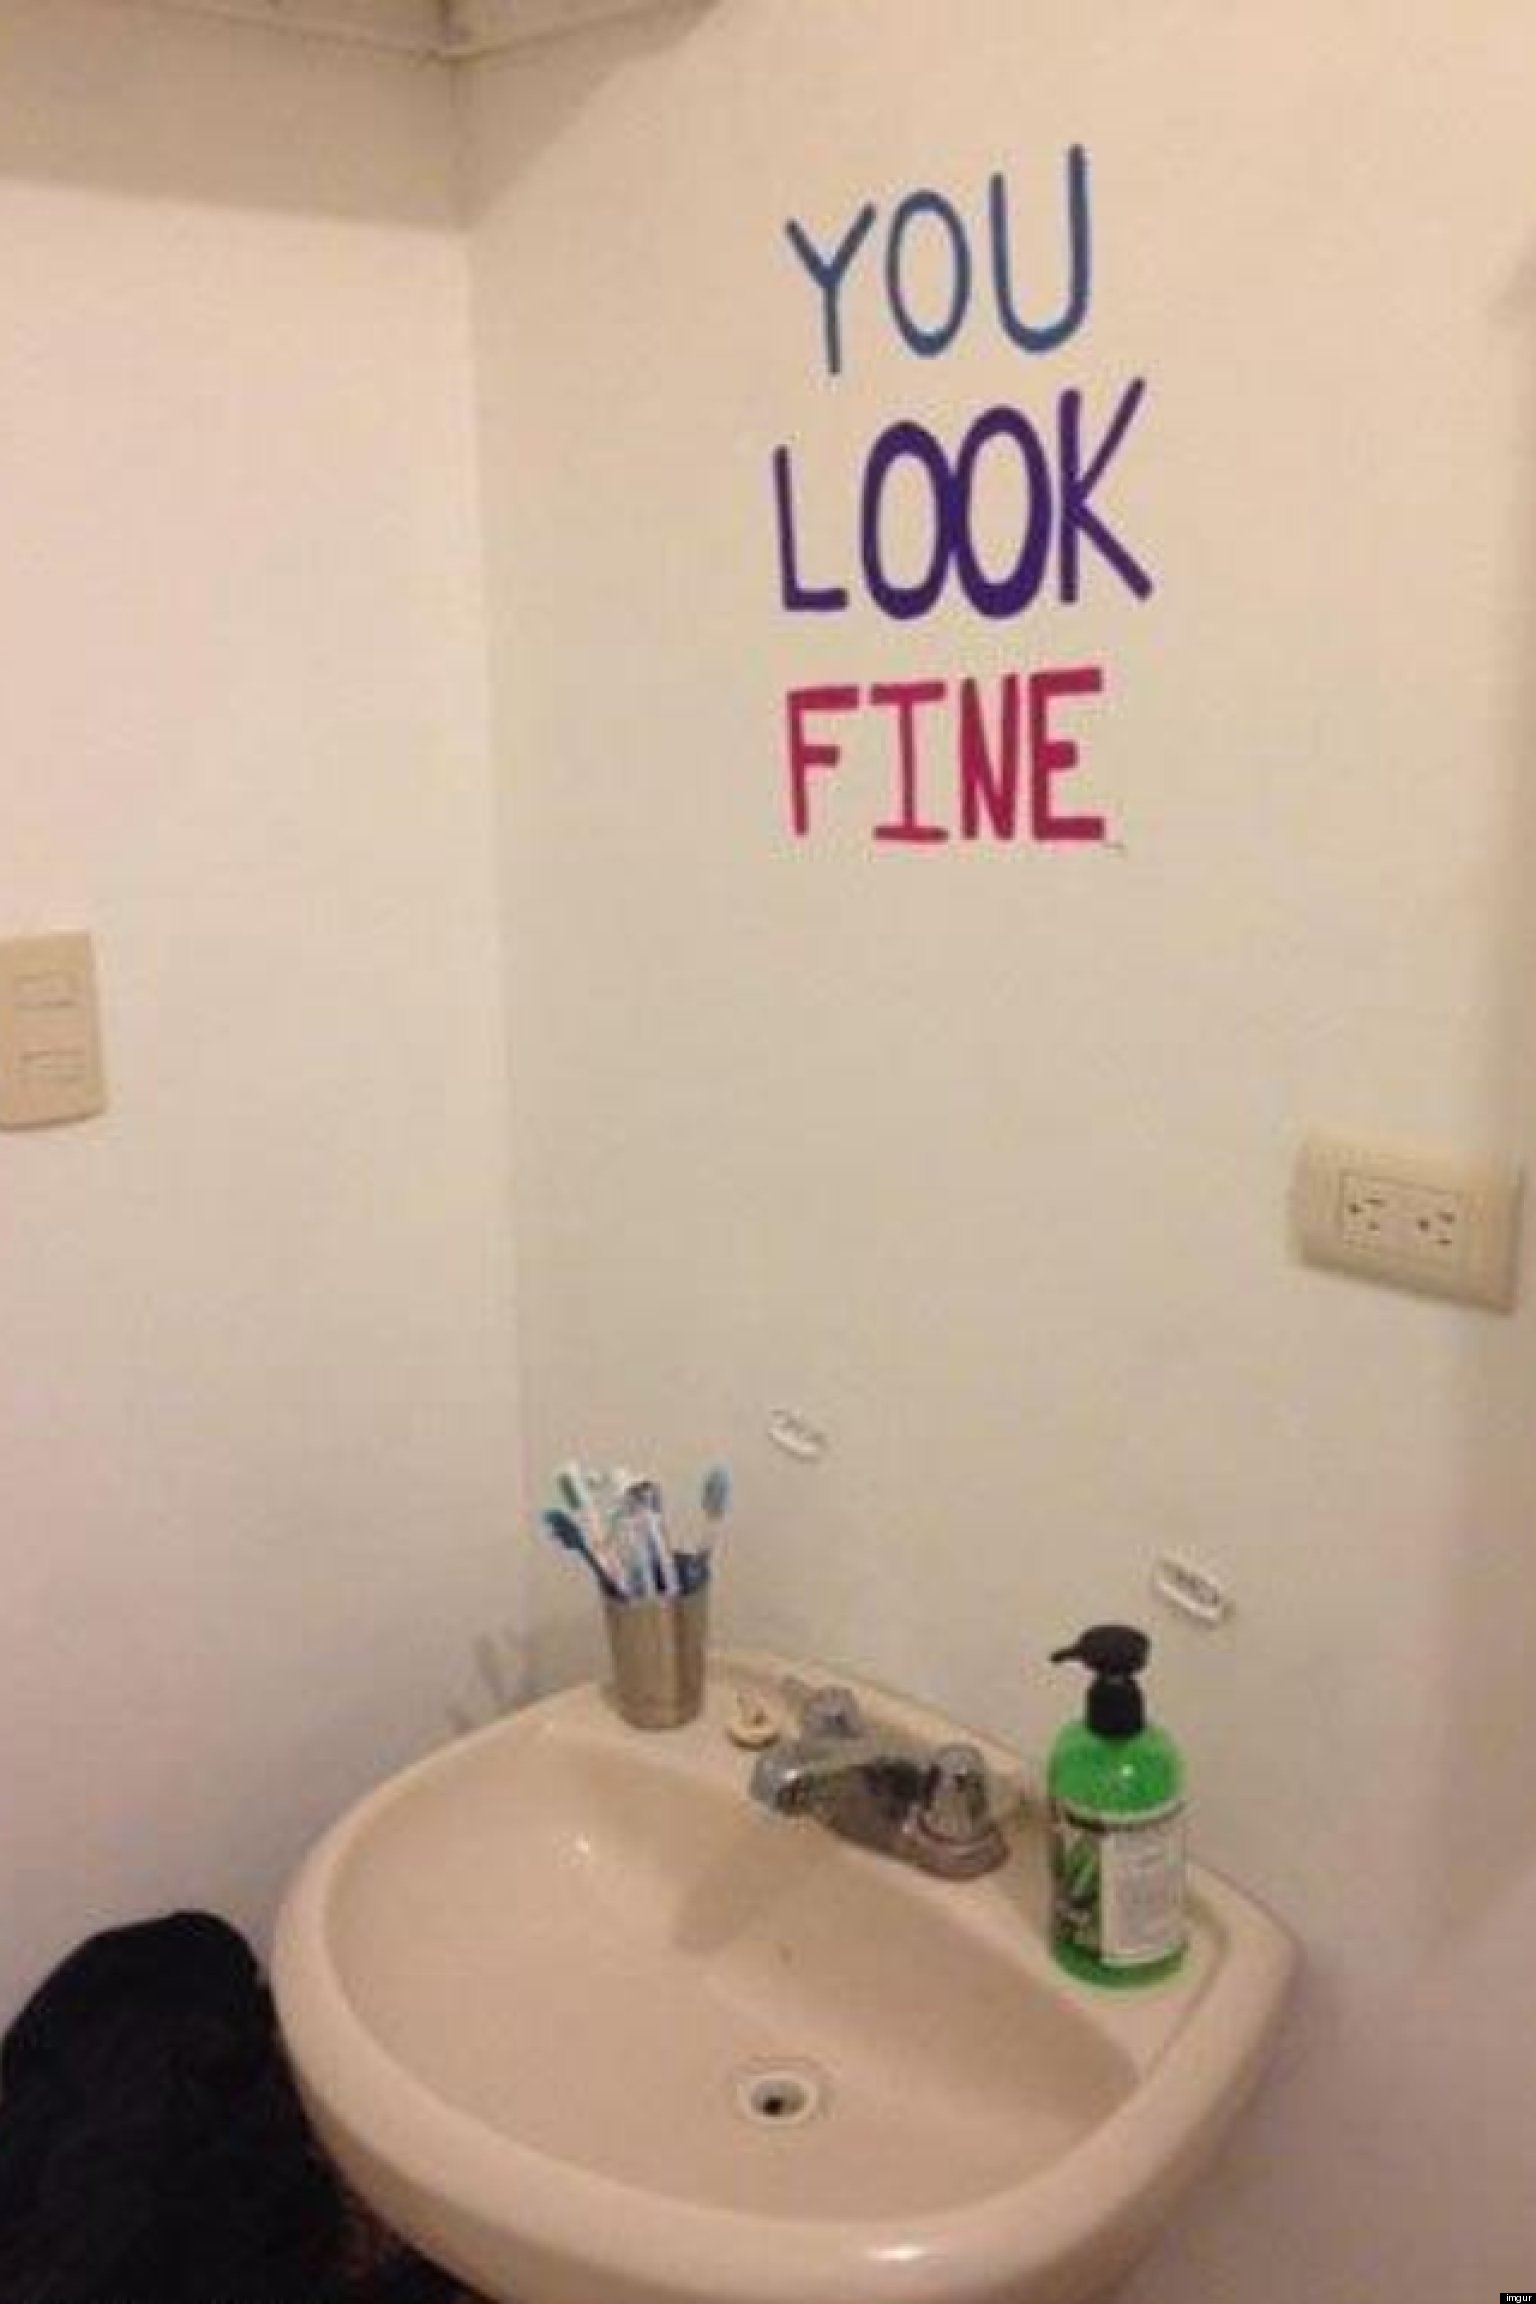 fine mirror wish saw looking woman themselves bathroom quotes looks mirrors ladies edgy would too damn looked doing really cool